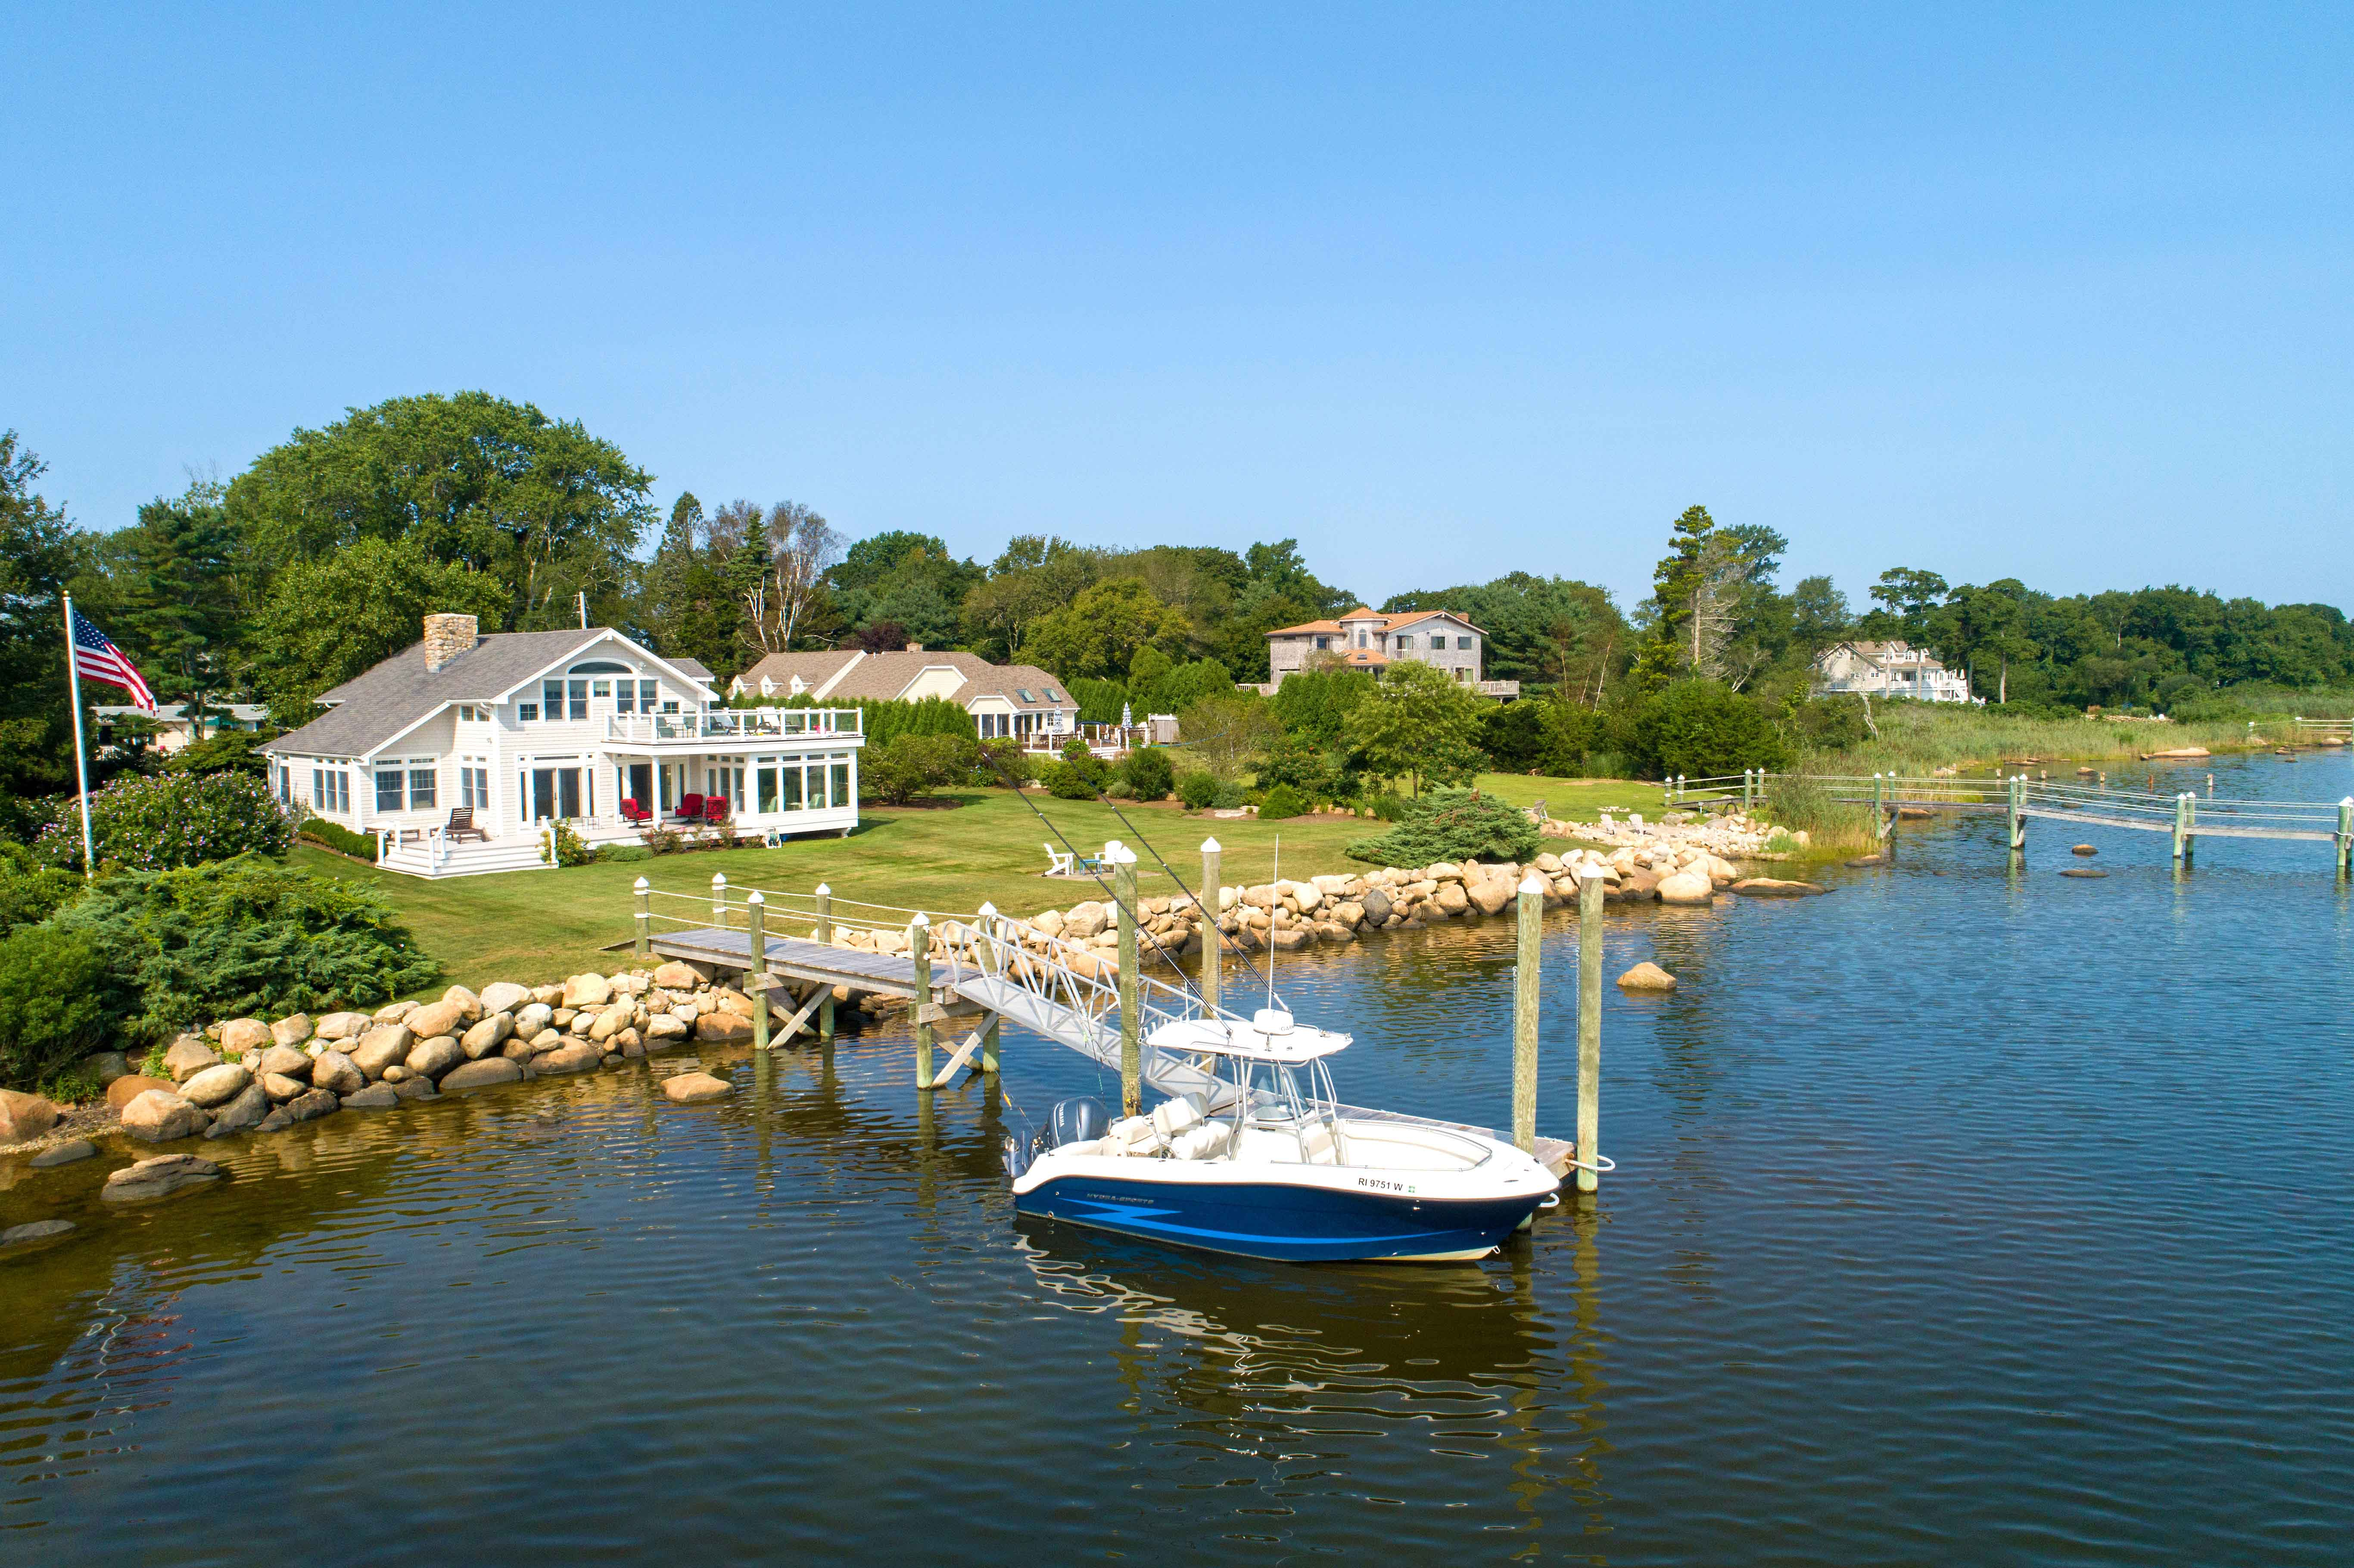 NINIGRET POND WATERFRONT HOME SELLS FOR $2.125M, WITH LILA DELMAN REPRESENTING BOTH SIDES OF THE TRANSACTION